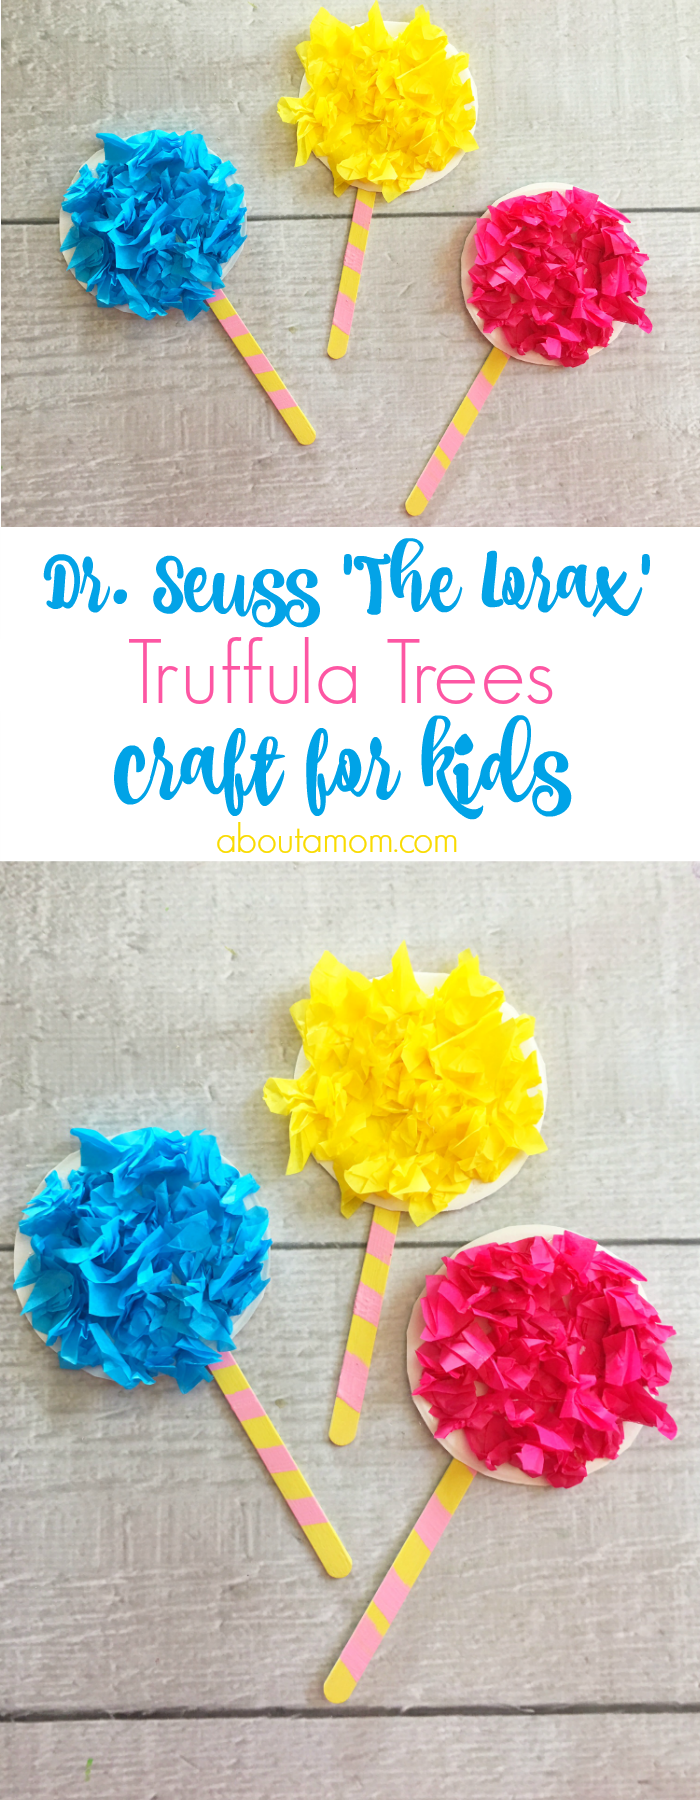 truffula trees craft inspired by 'the lorax' | crafts for kids